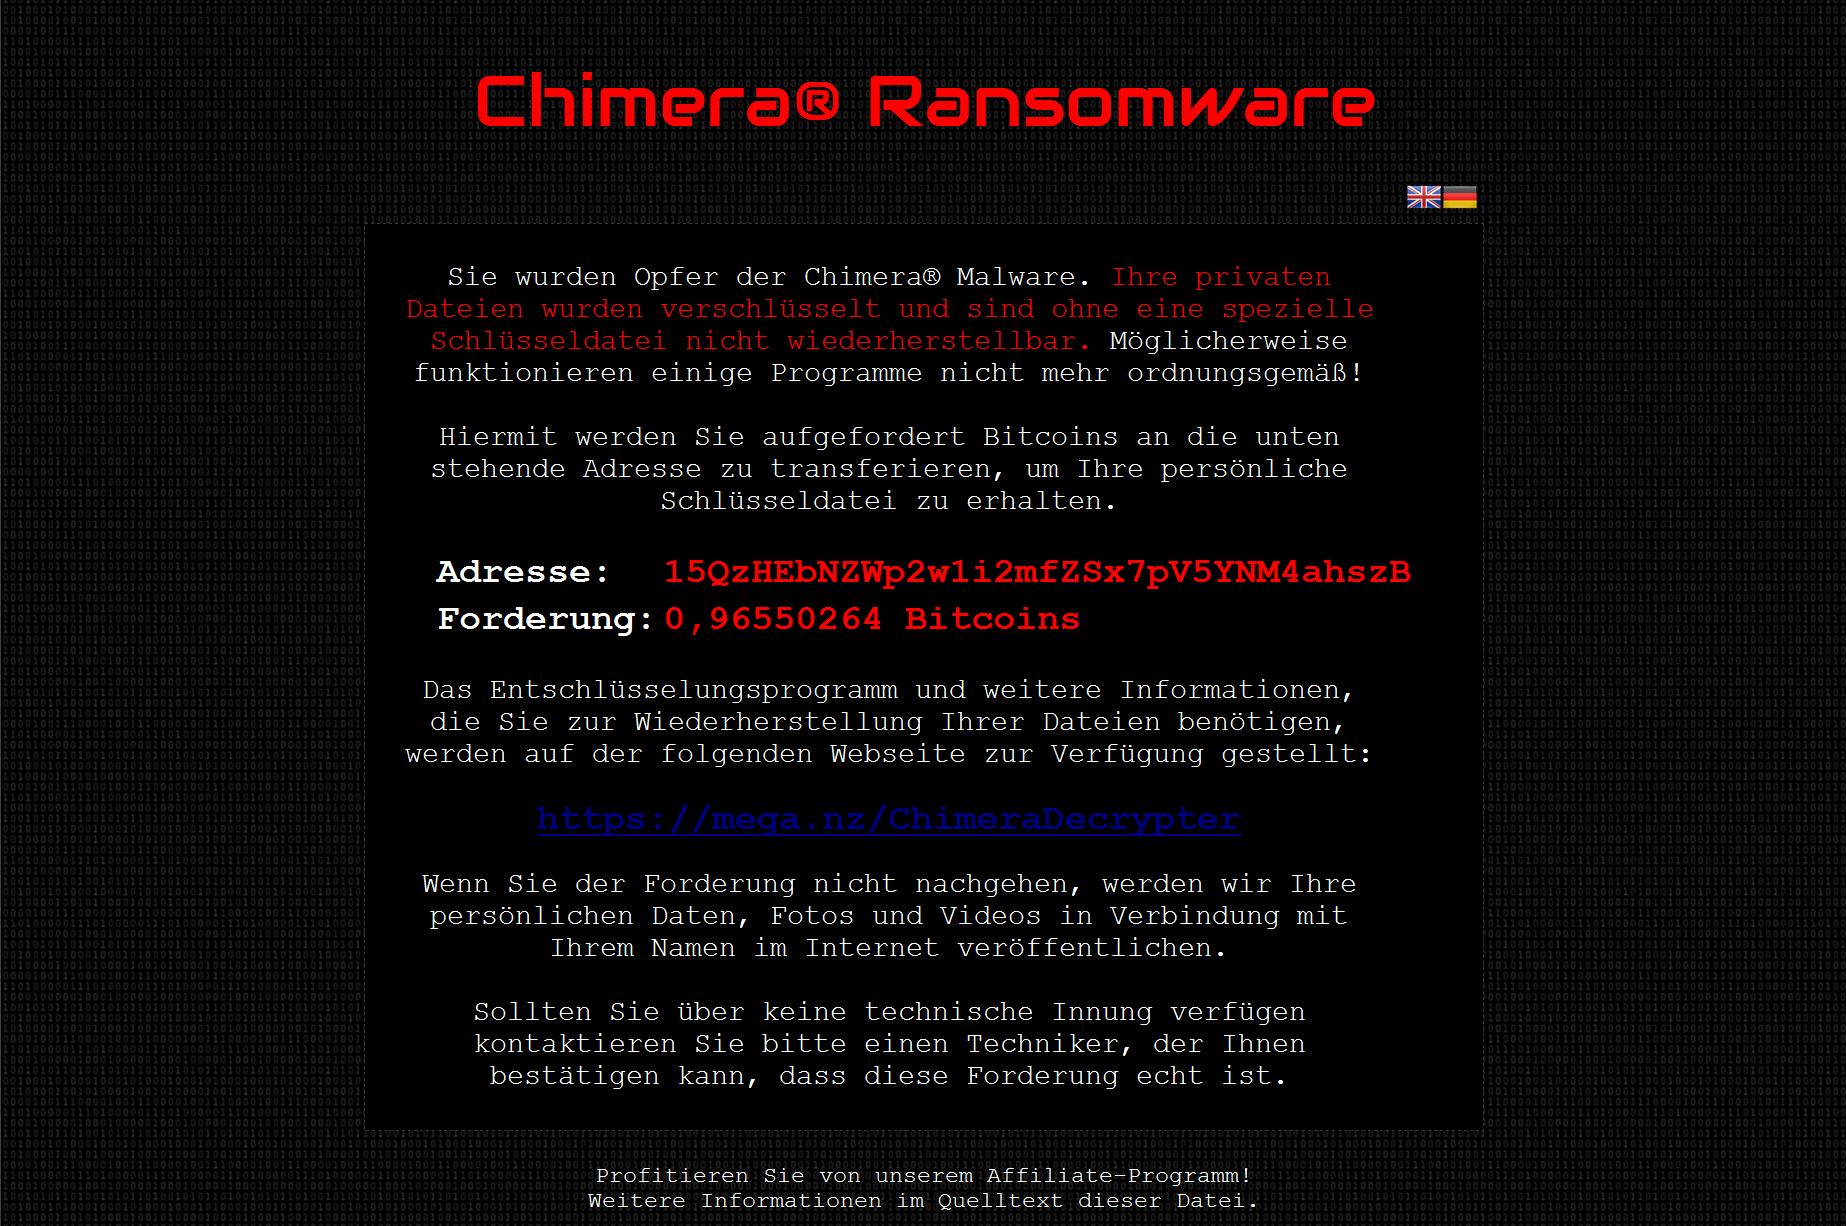 Chimera Ransomware Request